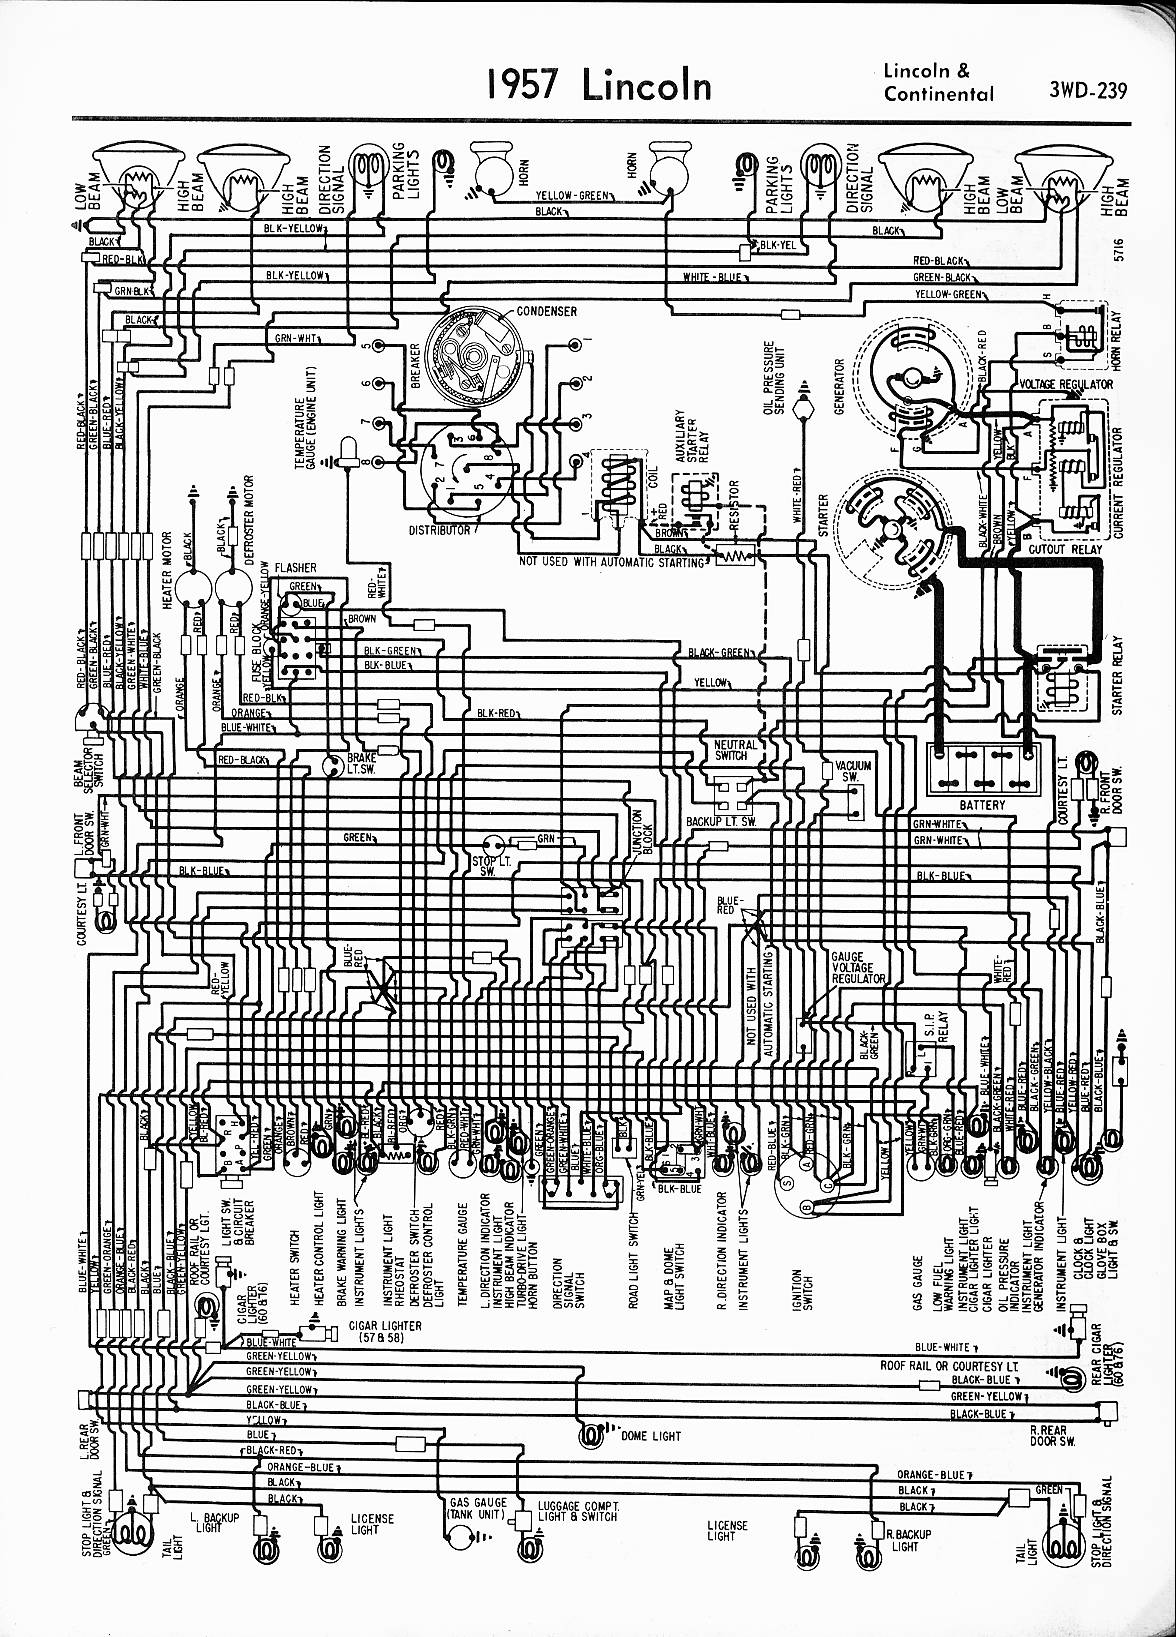 hight resolution of wiring diagram toyota mark 2 wiring diagram inside toyota mark x 2005 wiring diagram toyota mark